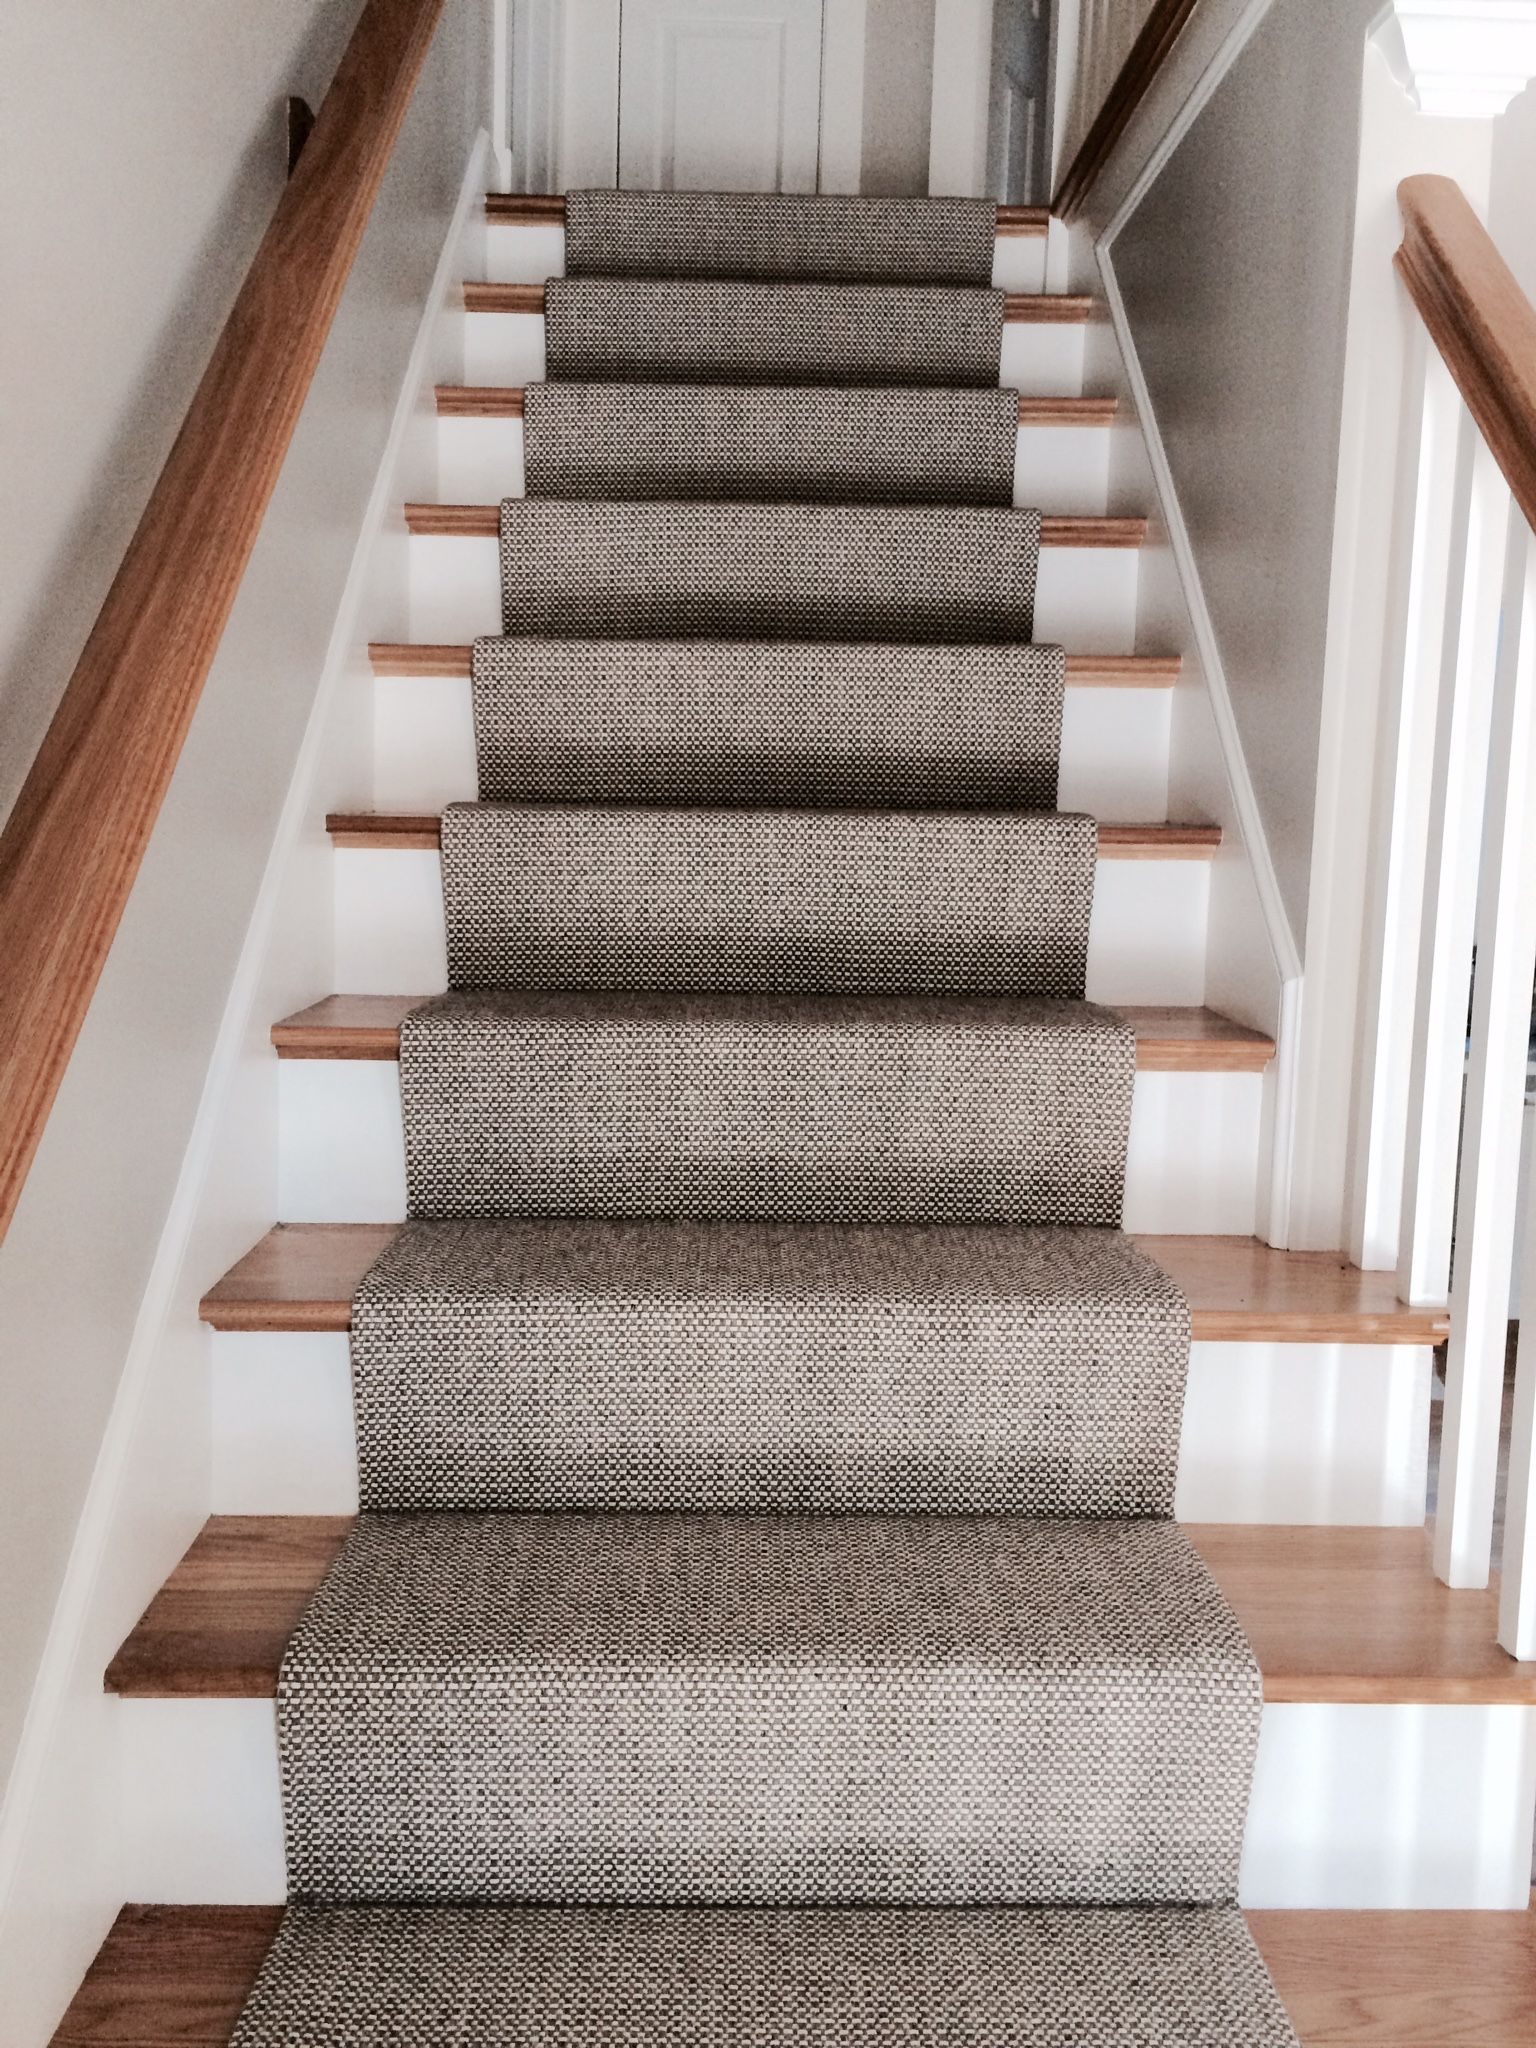 Merida Flat Woven Wool Stair Runner By The Carpet Staircase Staircase Carpet Runner Stair Runner Carpet